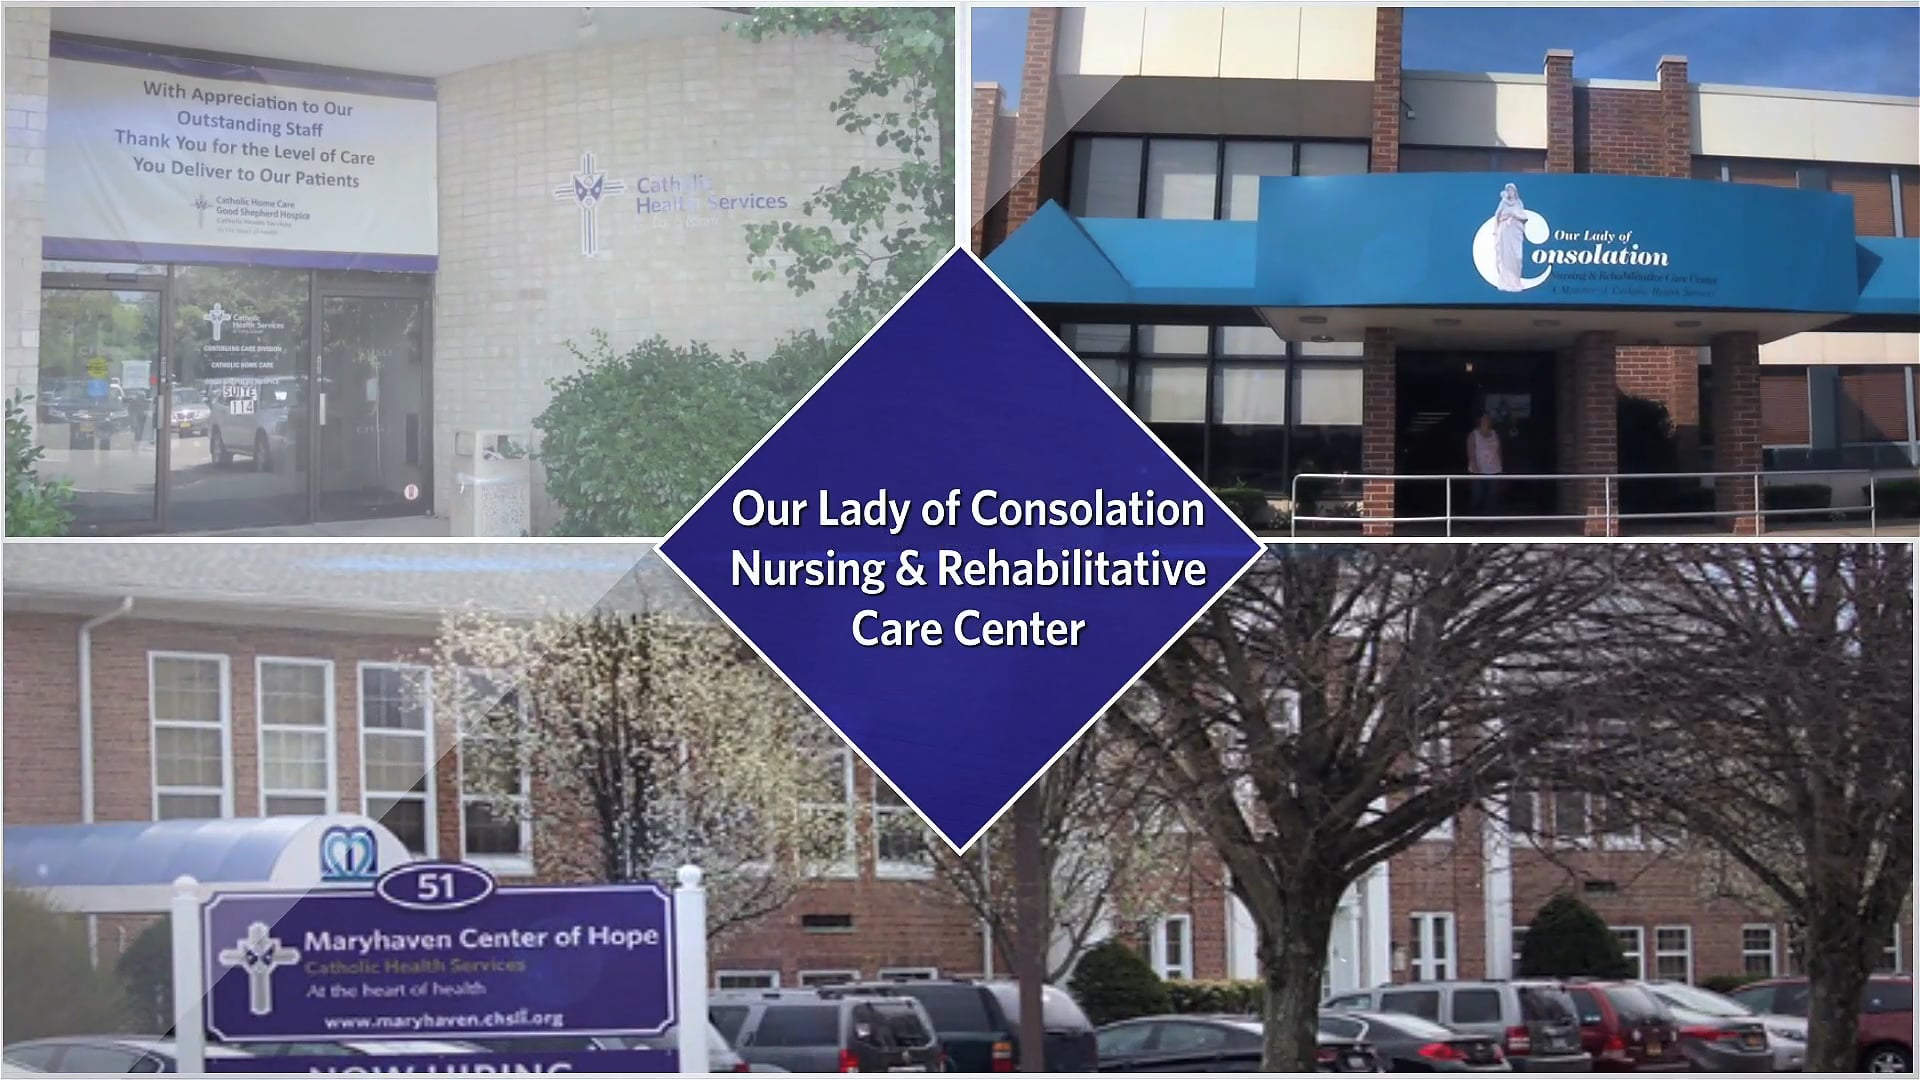 Dr. O: Faithfully Transforming Health Care - Our Lady of Consolation